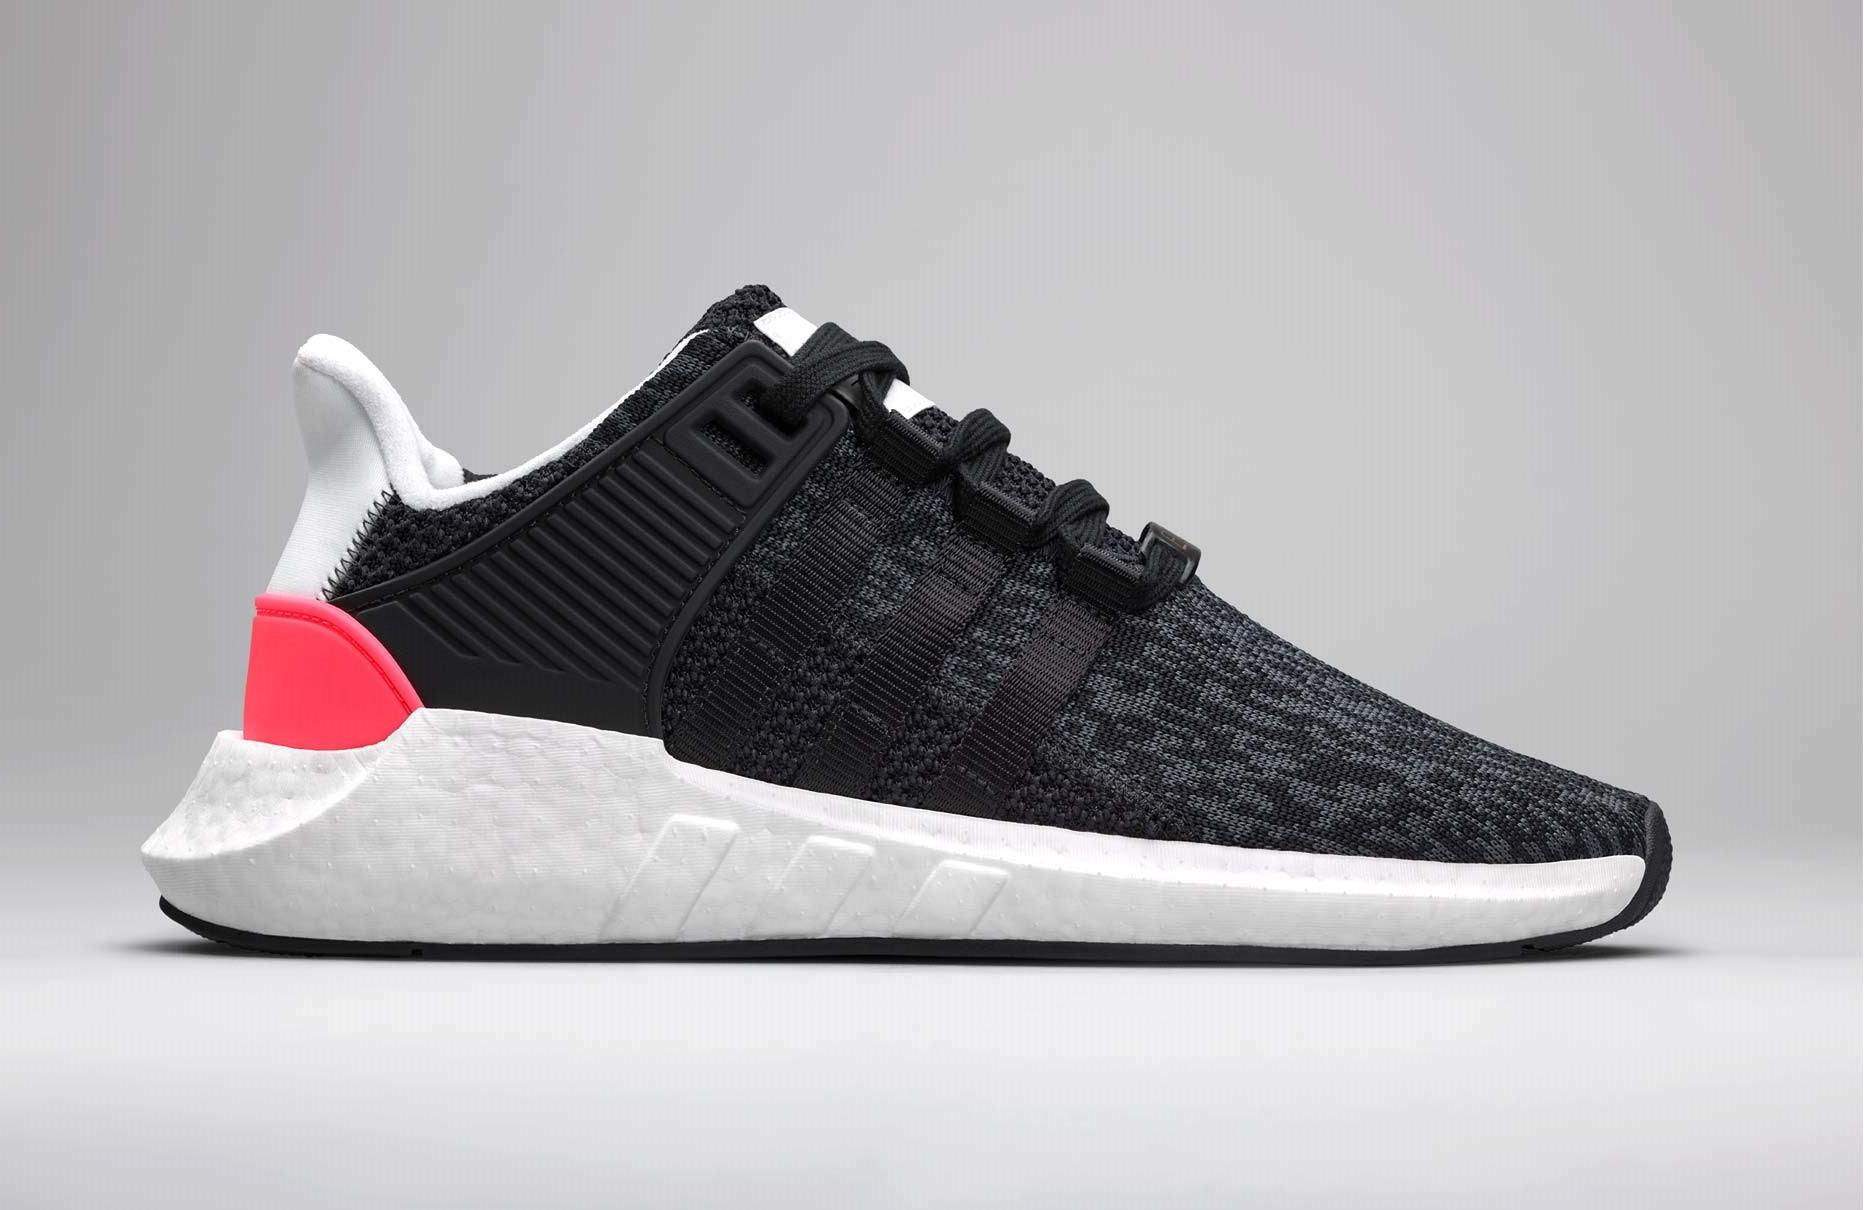 reputable site 4a17c aa30a ... wholesale adidas officially launches the eqt collection in malaysia  masses 668be a4dd6